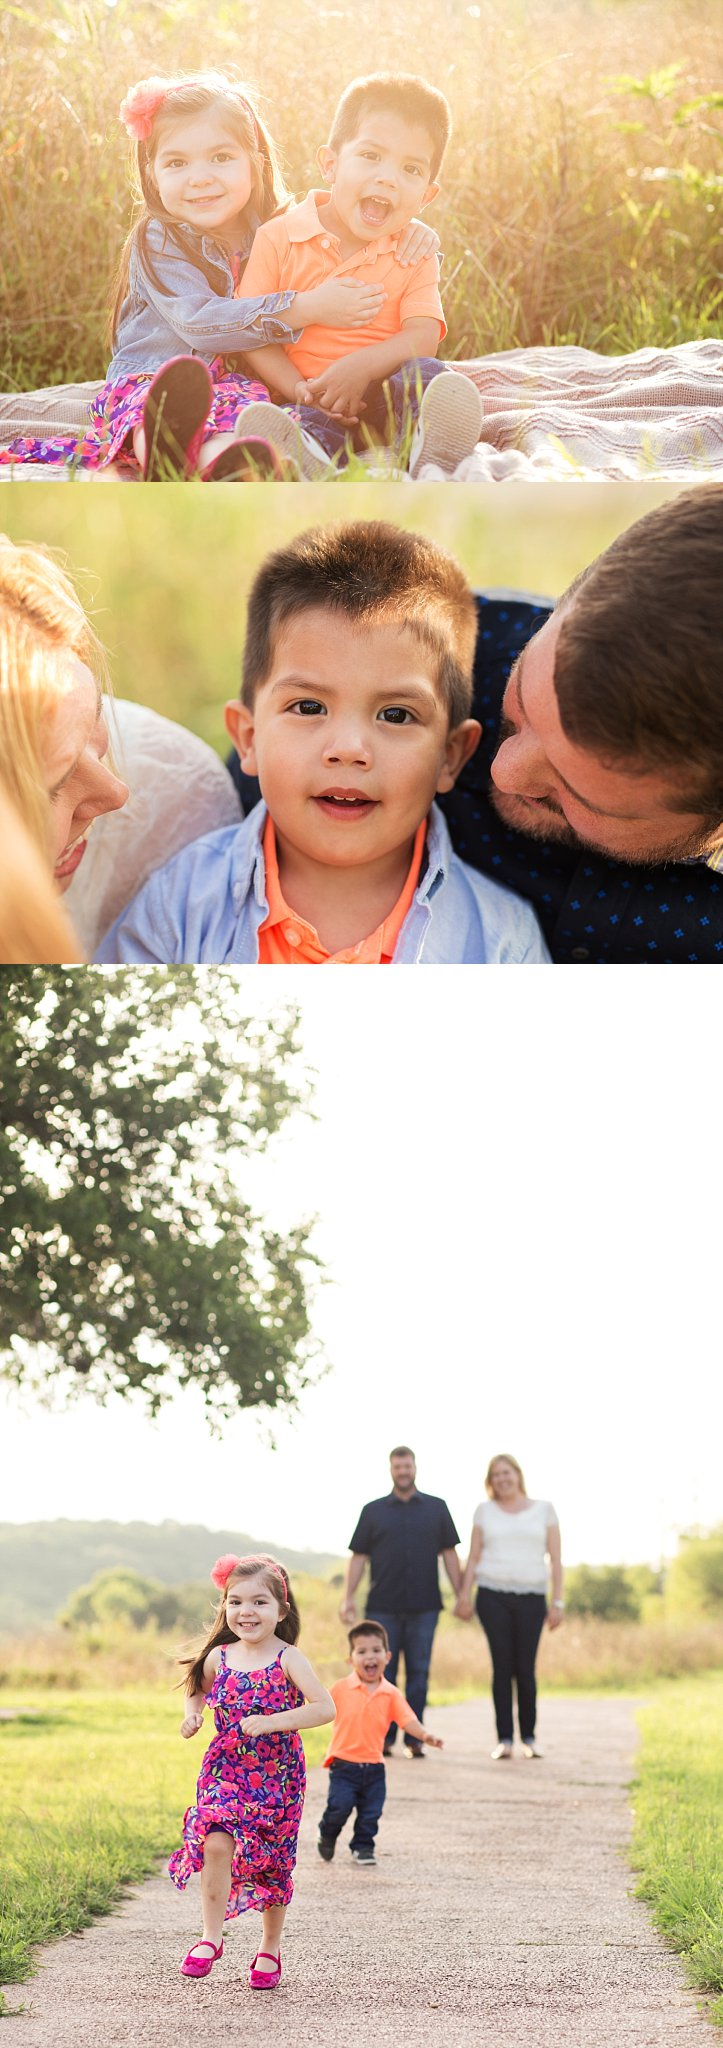 Austin Family Photographer | San Marcos Family Photography | San Antonio Family Photographer | New Braunfels Family Photography | Seguin Family Photographer | Austin Lifestyle Family Photographer | San Antonio Lifestyle Photography